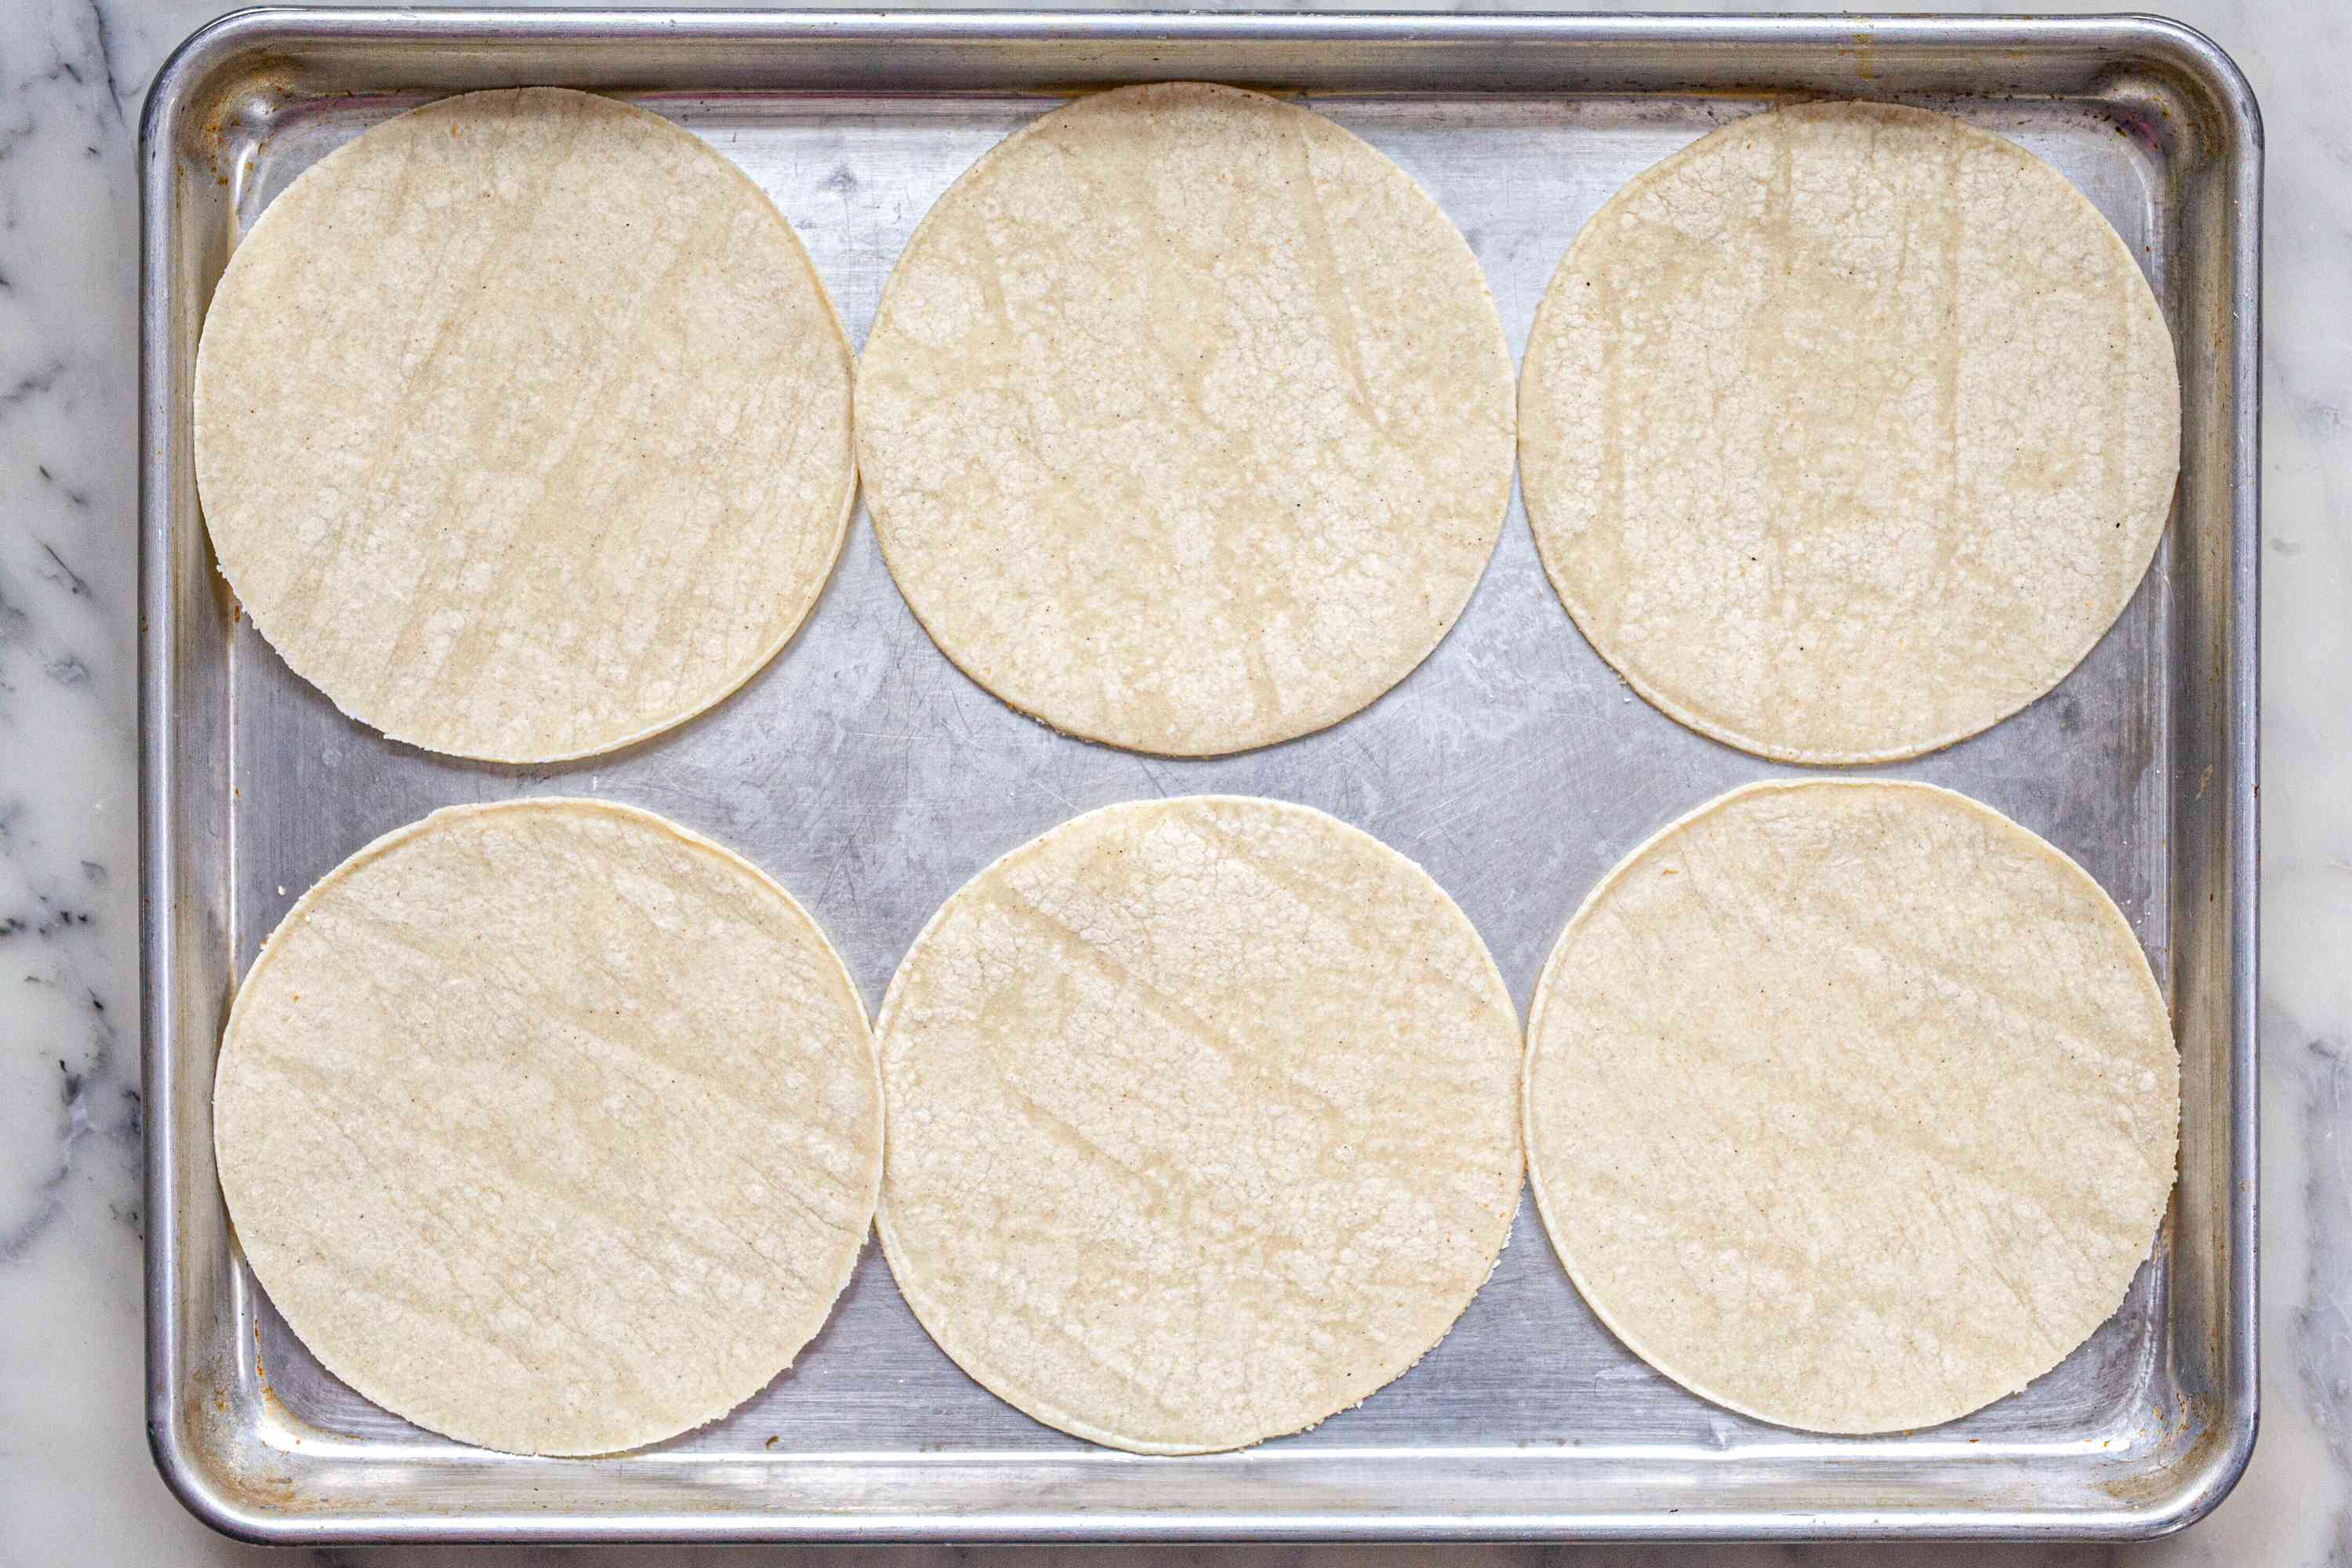 A sheet pan with tortillas on it to make homemade chips.